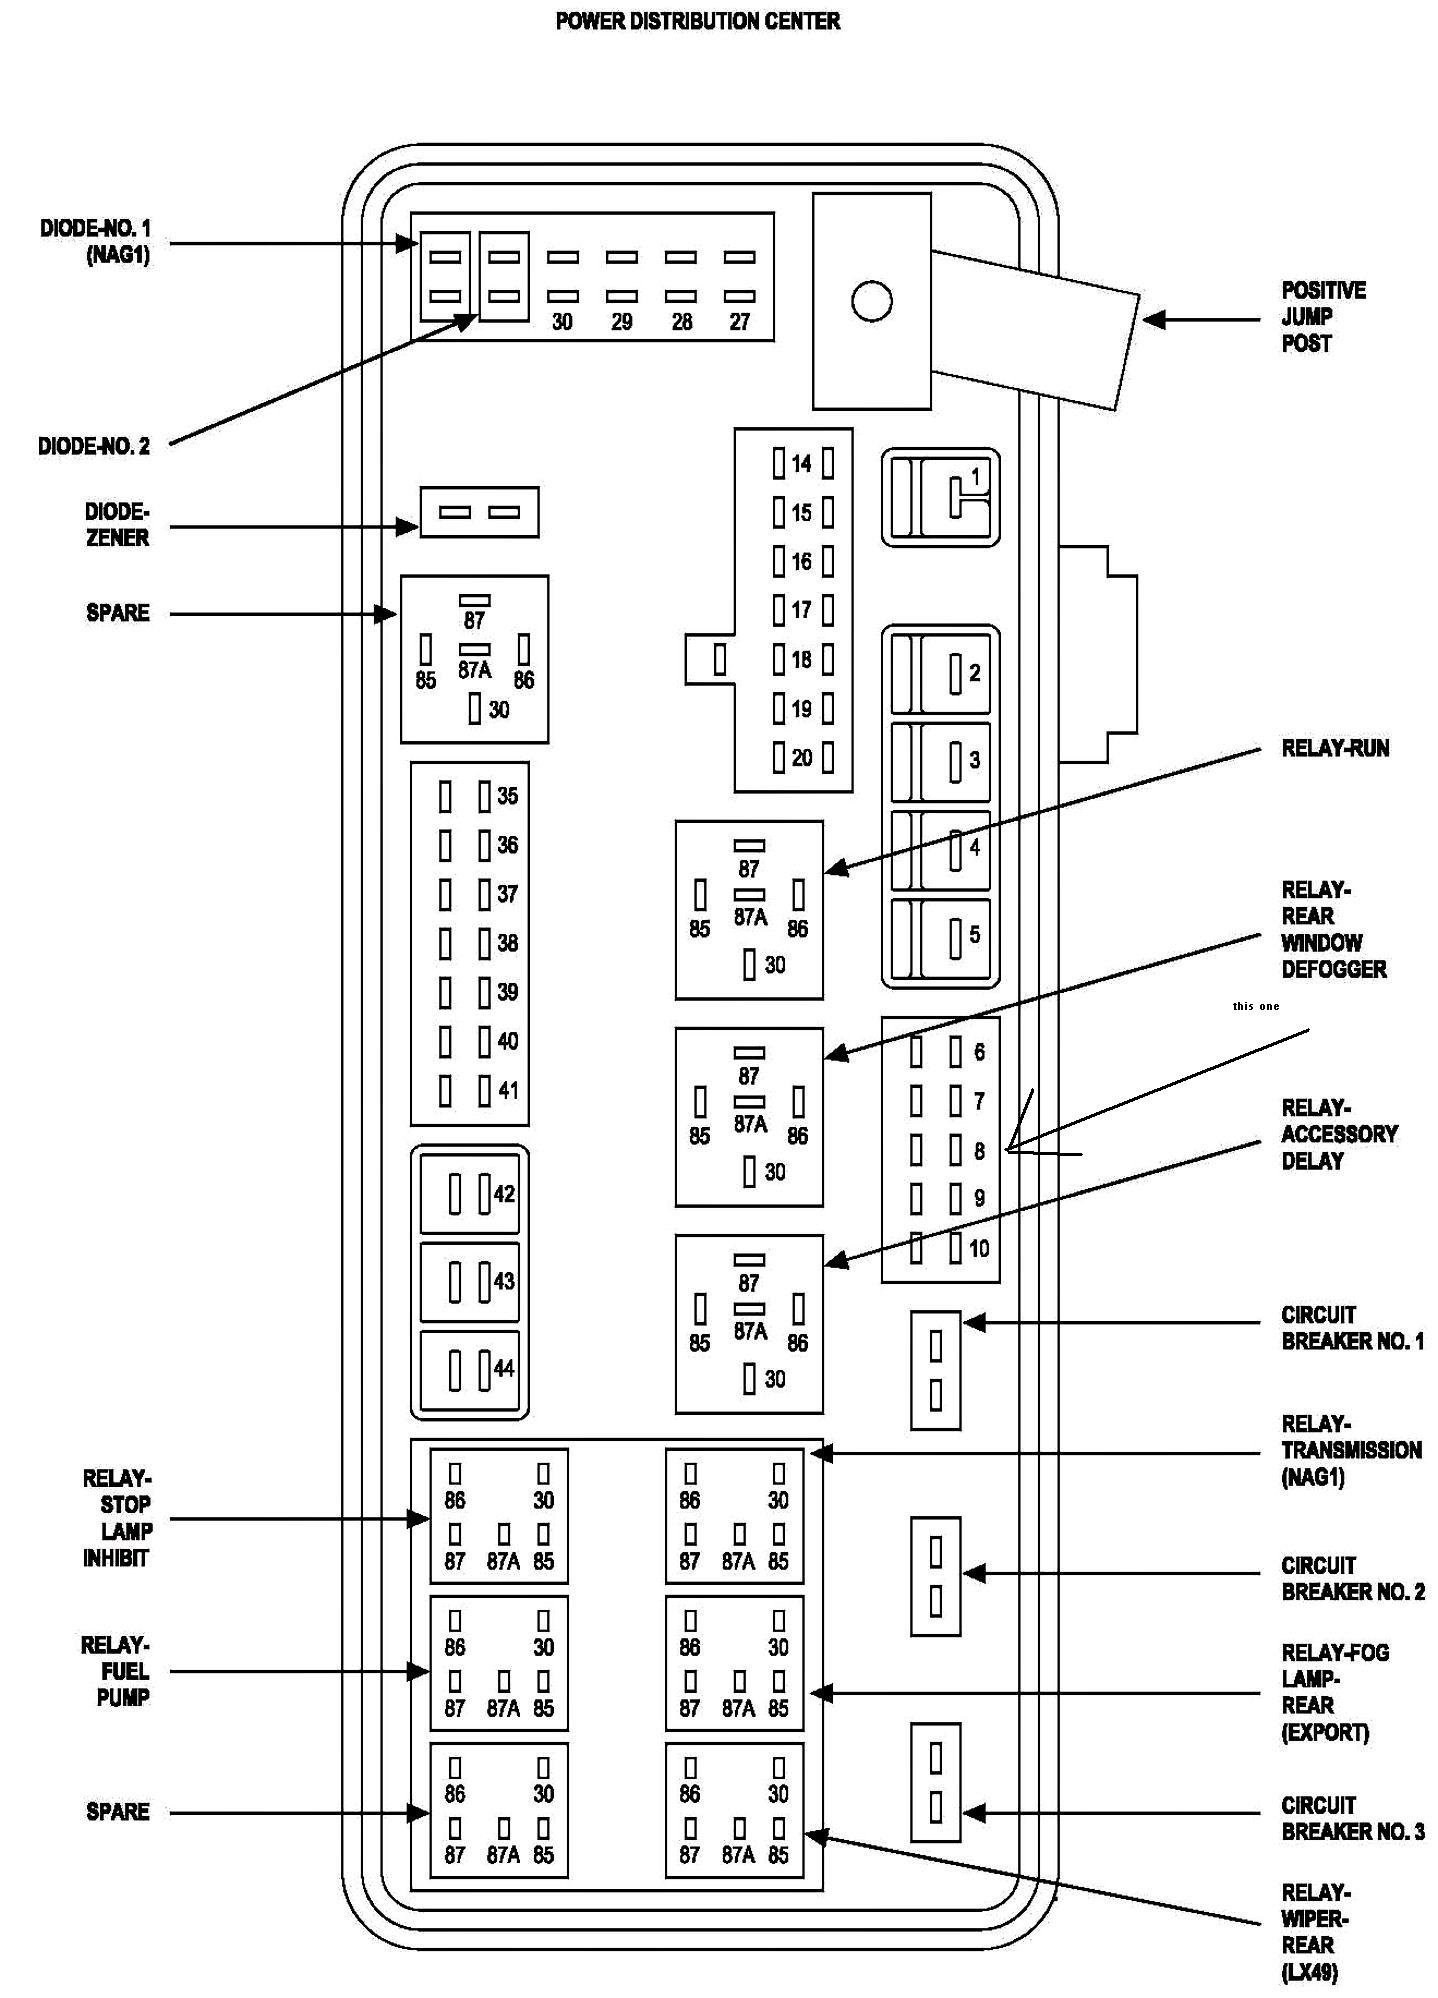 Fuse Panel Wiring Diagram - Schematic Wiring Diagram on fuse panel relay diagram, 2010 f150 fuse panel diagram, fuse panel plug, fuse panel cover, dodge fuse panel diagram, corvette fuse panel diagram, kenworth t800 fuse panel diagram, fuse panel diagram for 2005 chevy aveo, fuse and relay diagram, instrument panel cluster diagram, ford f-150 fuse panel diagram, 98 ranger fuse diagram, 57 chevy fuse panel diagram, fuse panel cabinet, home circuit breaker panel diagram, 2007 chevy silverado fuse diagram, 2008 ford f450 fuse panel diagram, house fuse panel diagram, fuse panel honda, fuse panel connector,